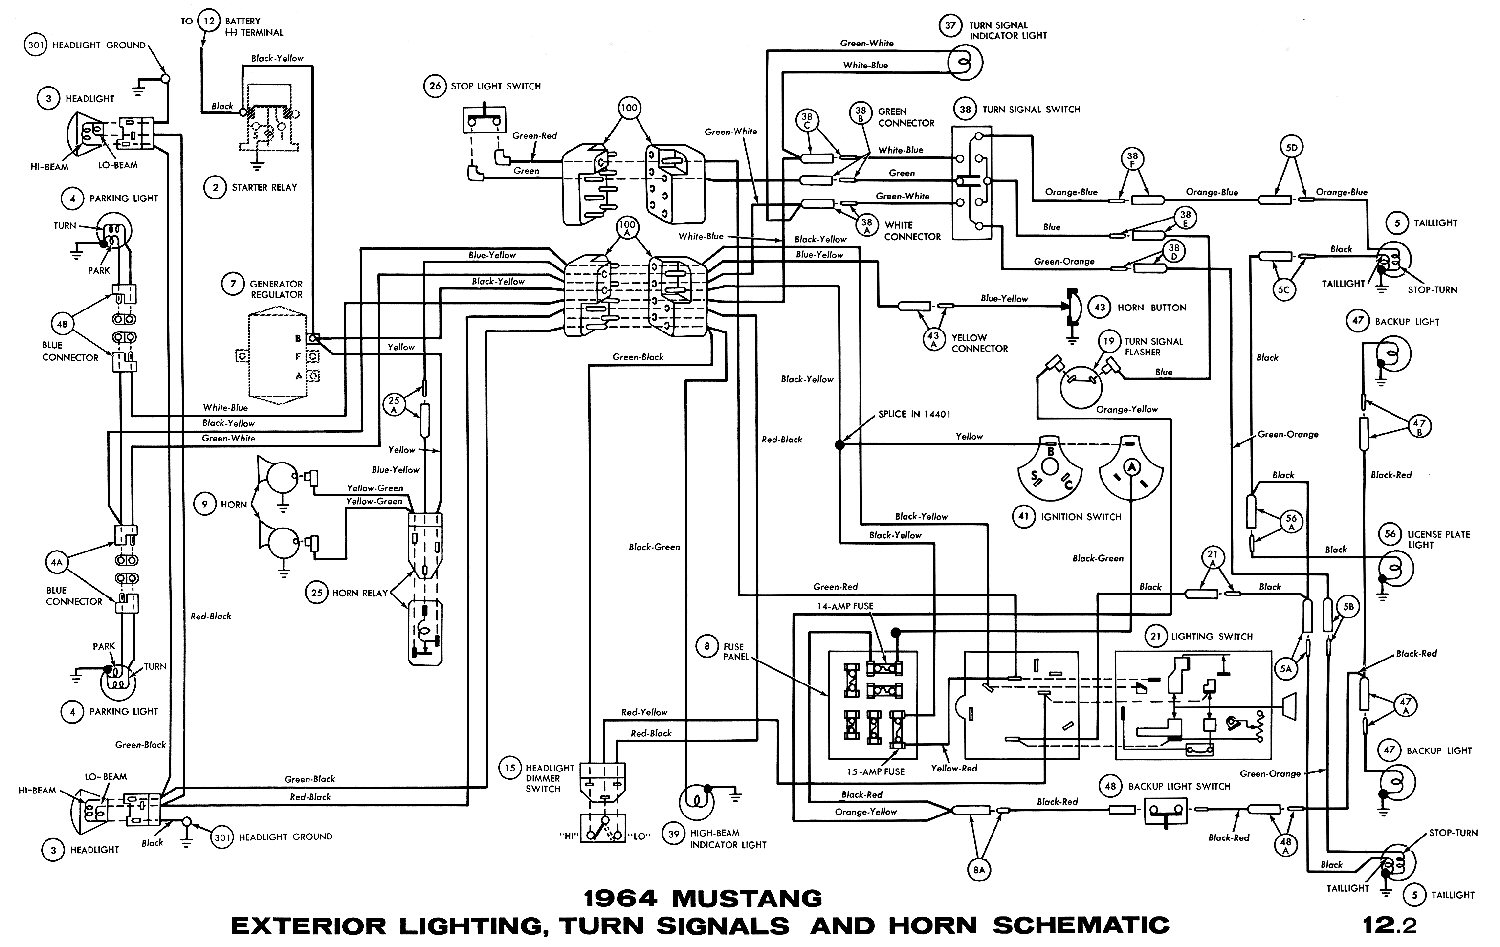 1964i 1964 mustang wiring diagrams average joe restoration 1969 mustang ignition switch wiring diagram at soozxer.org